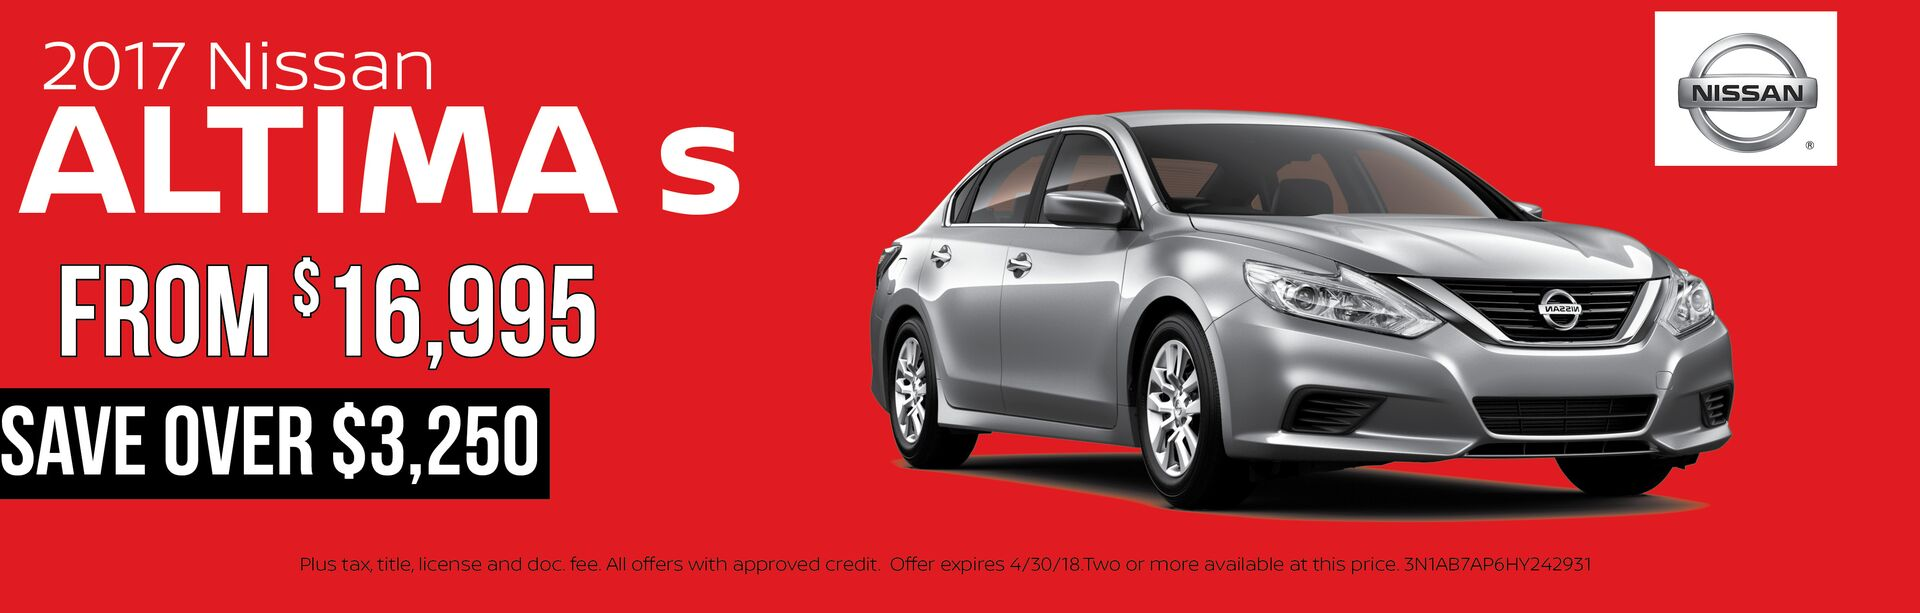 Save on a 2017 Nissan Altima